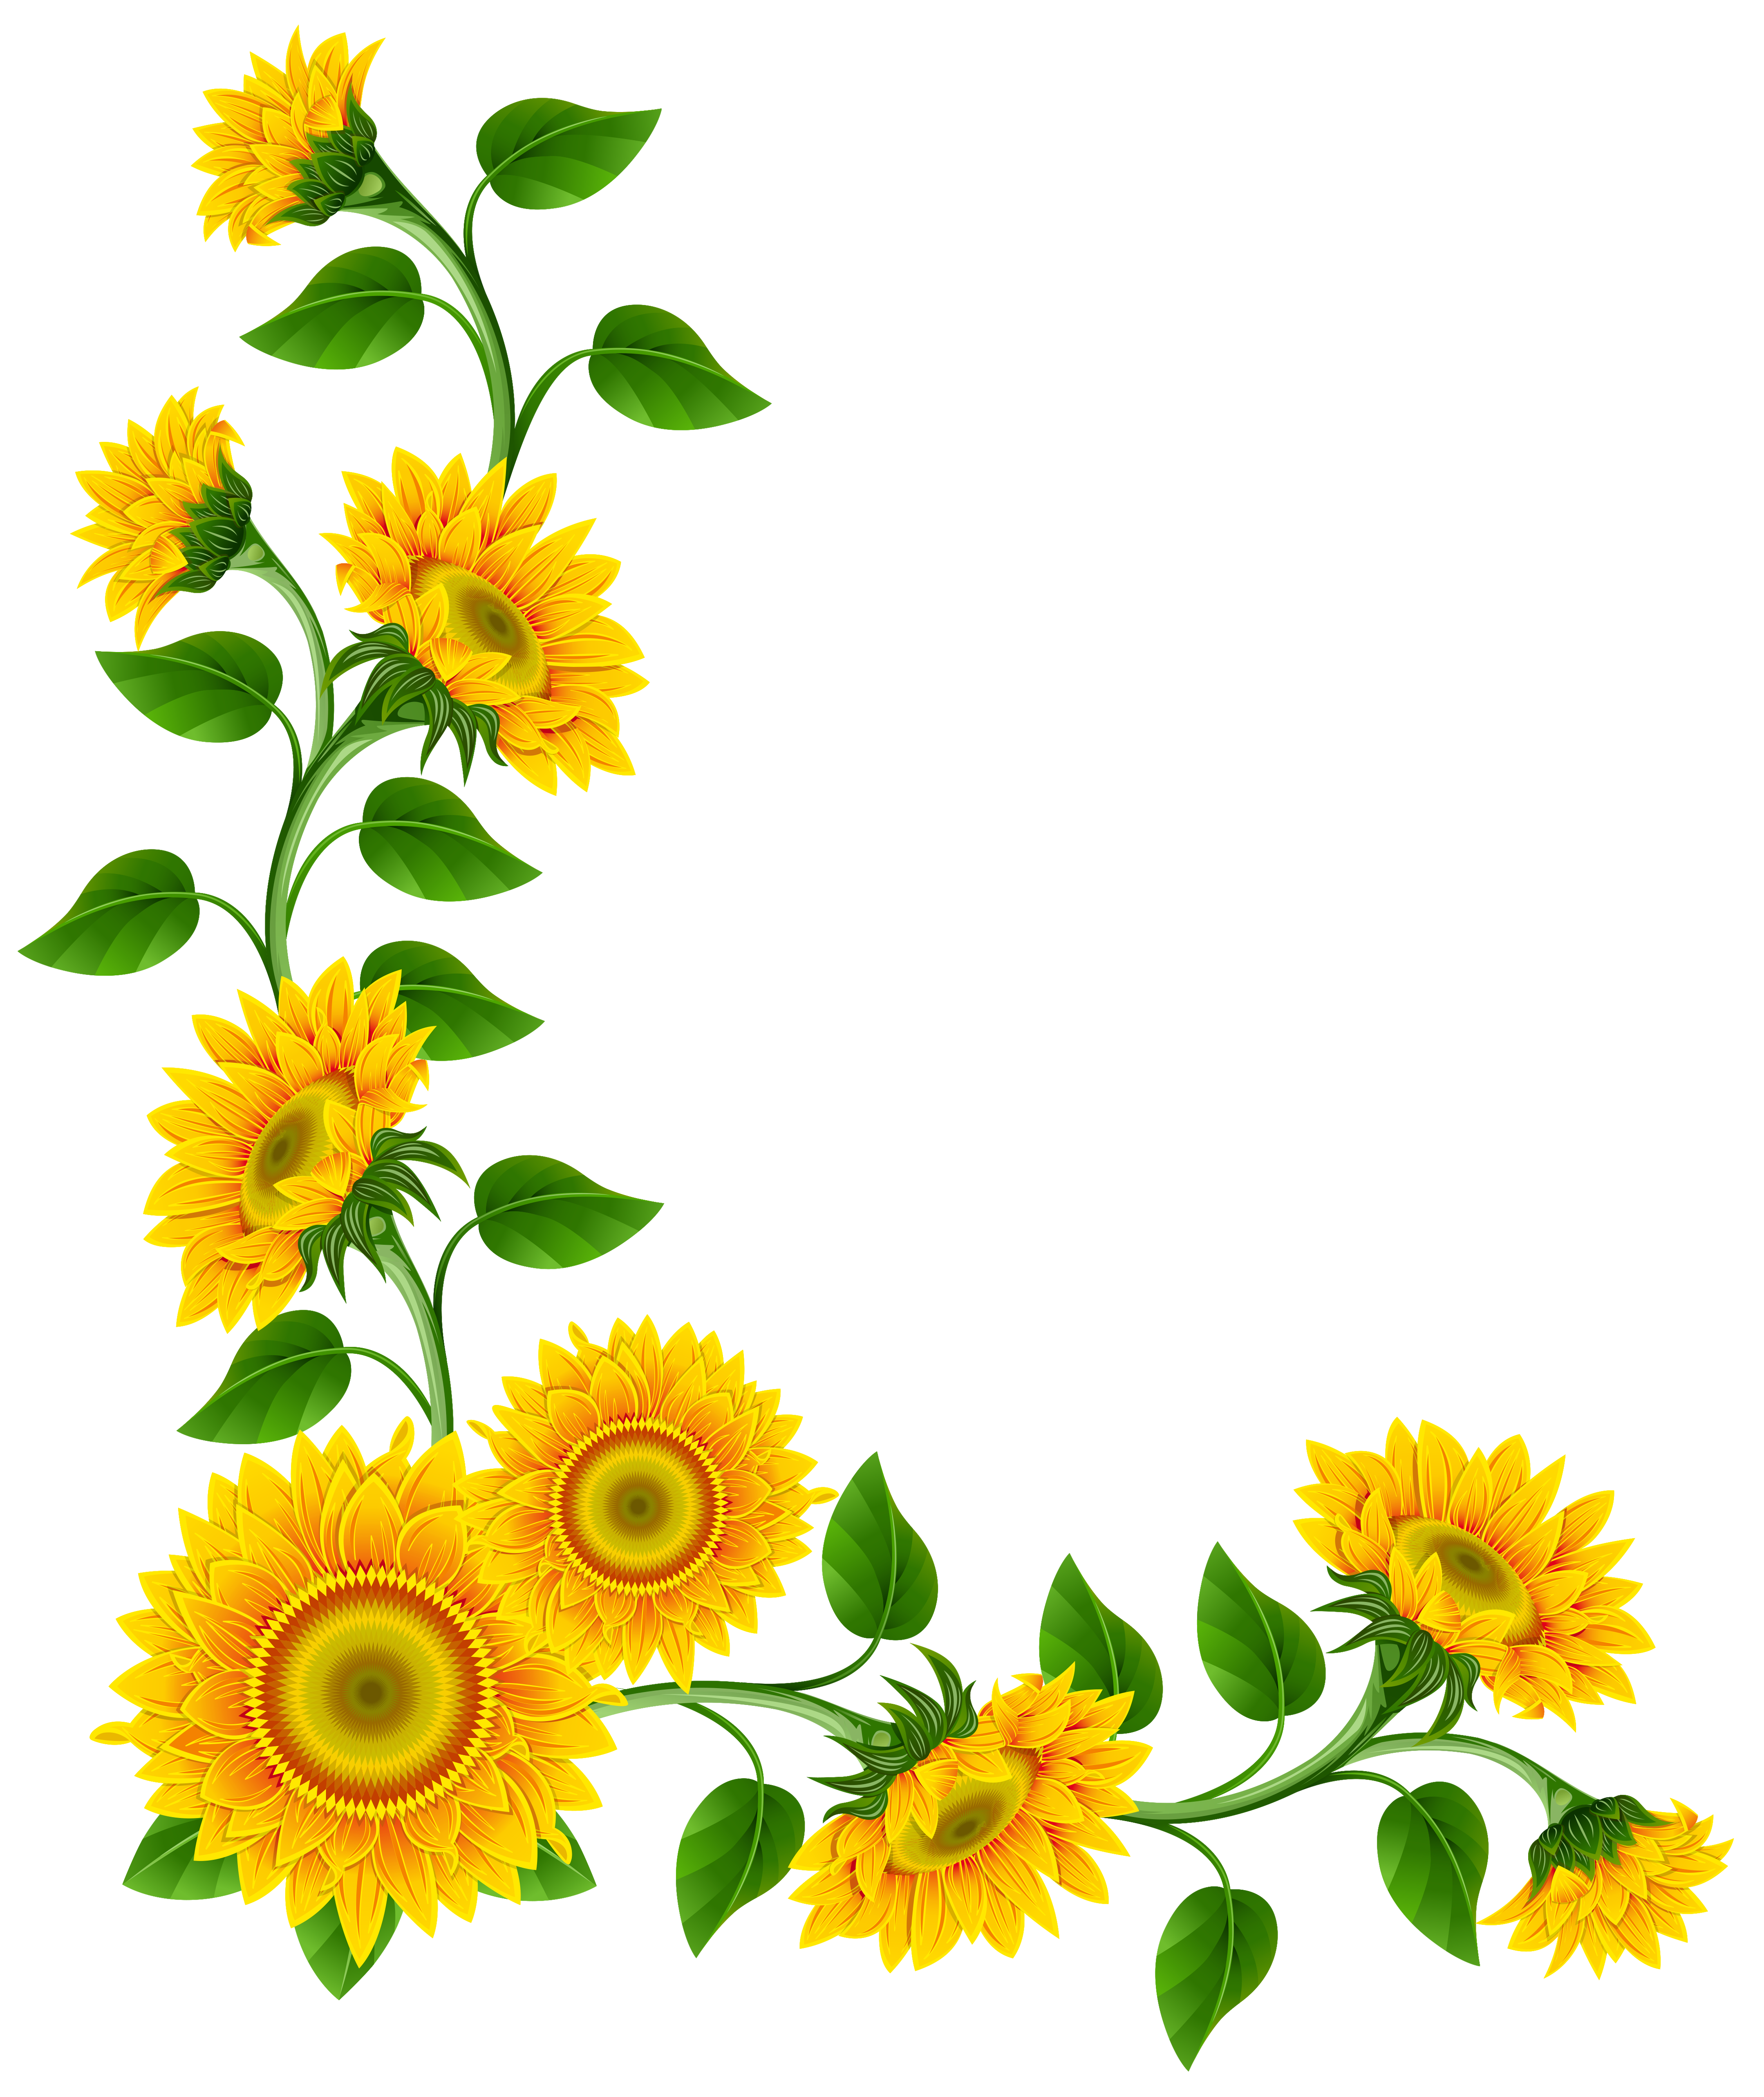 4316x5130 Pictures Free Sunflower Clip Art Borders,